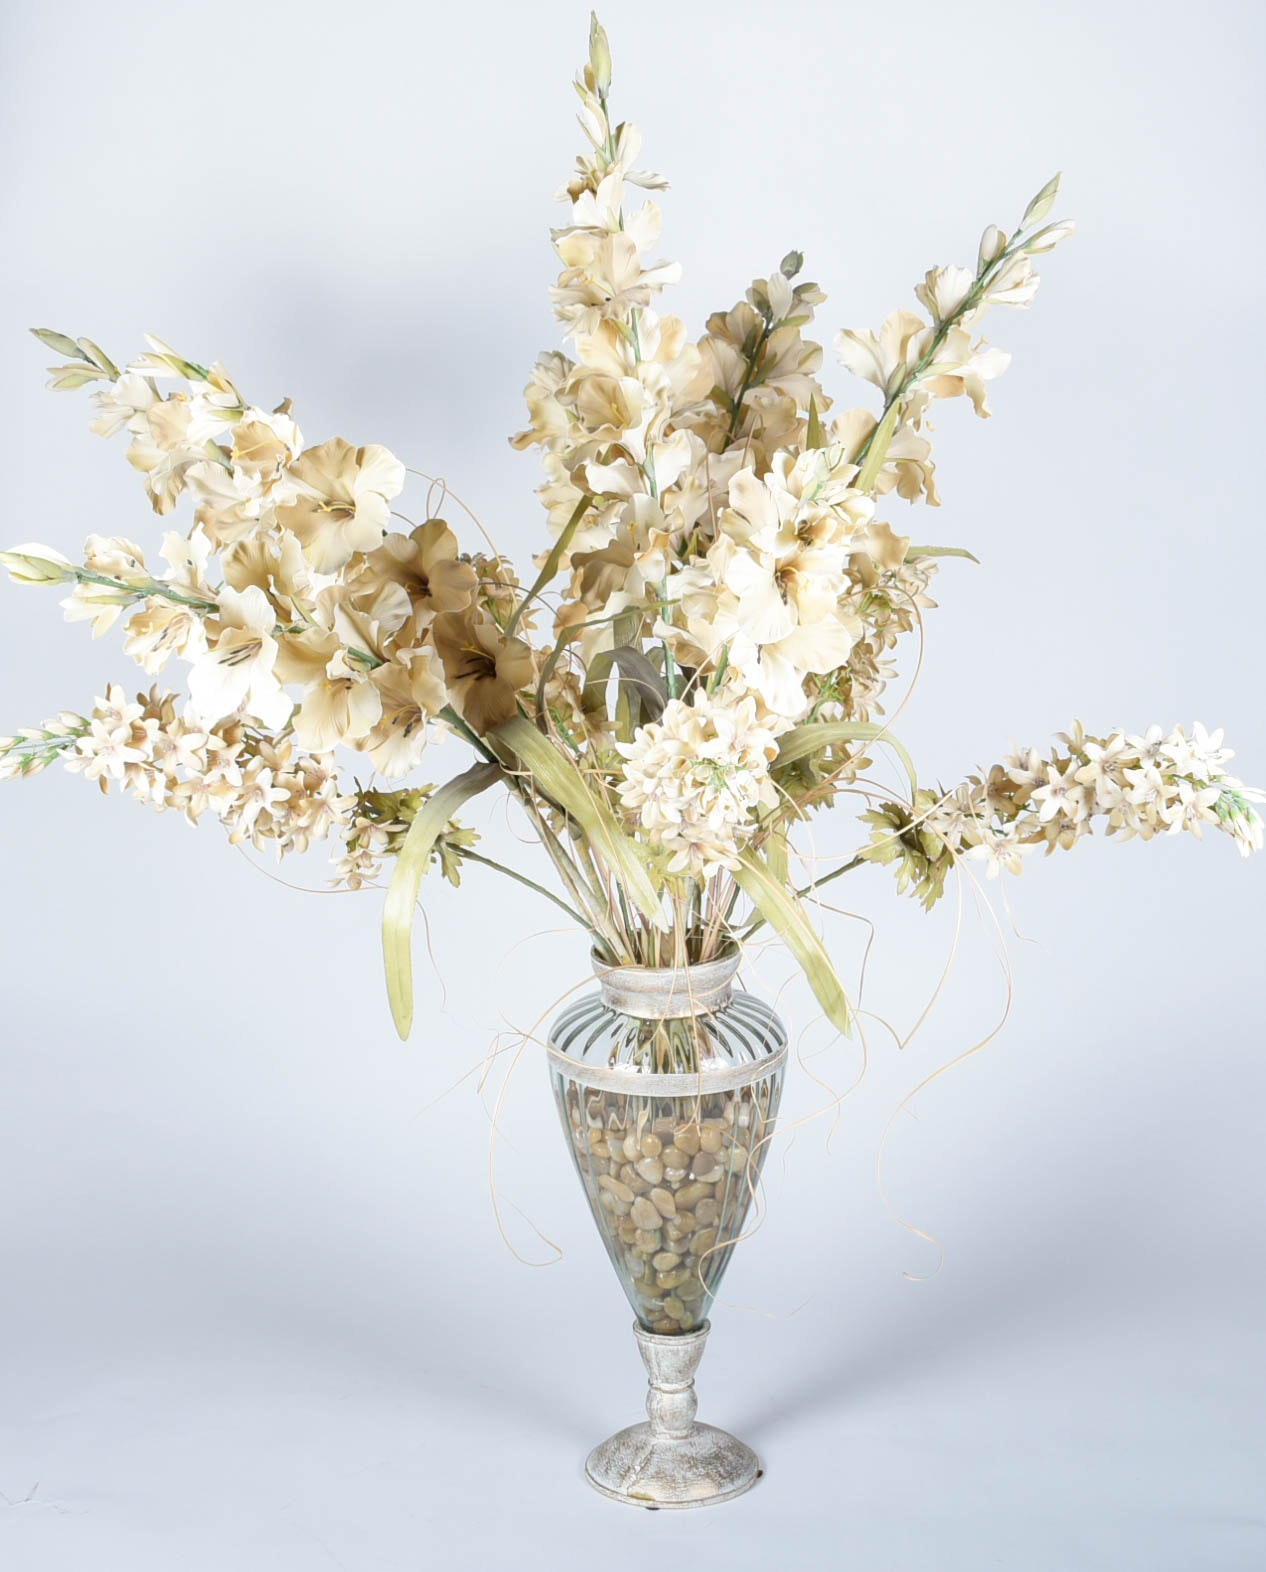 Decorative Vase With Faux Holly Hock Flowers Ebth